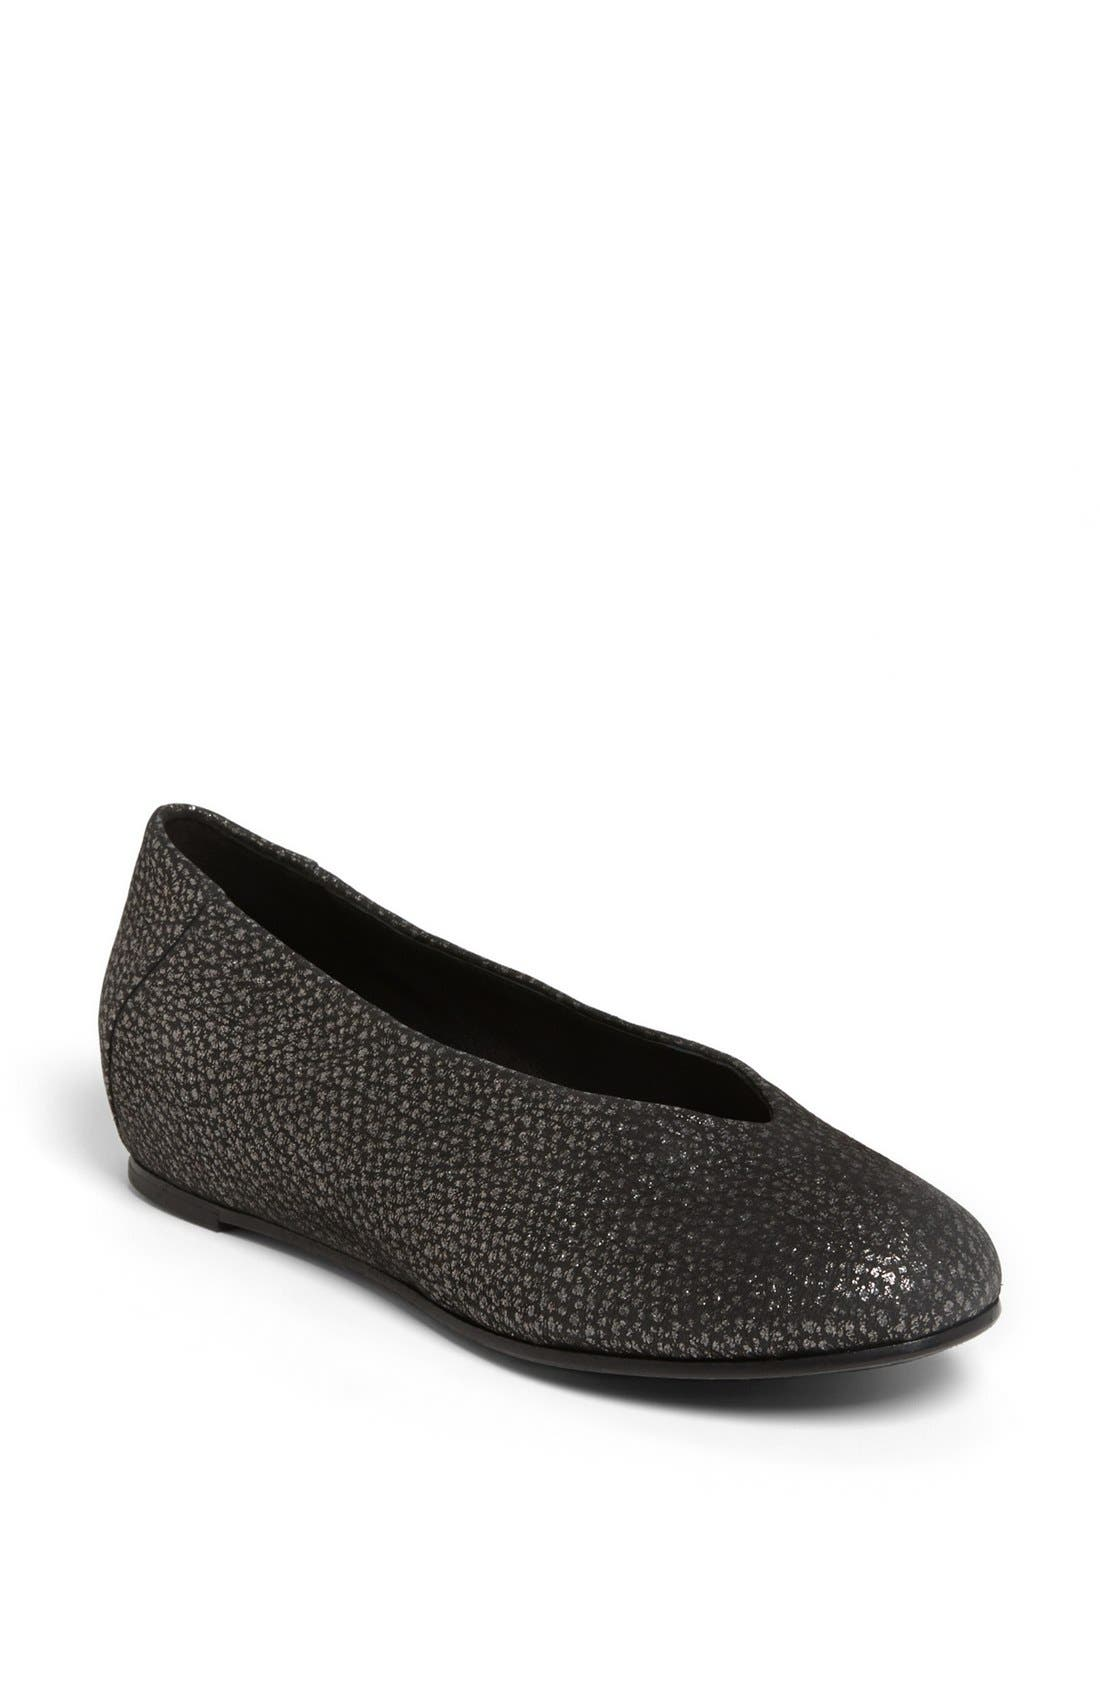 Alternate Image 1 Selected - Eileen Fisher 'Patch' Flat